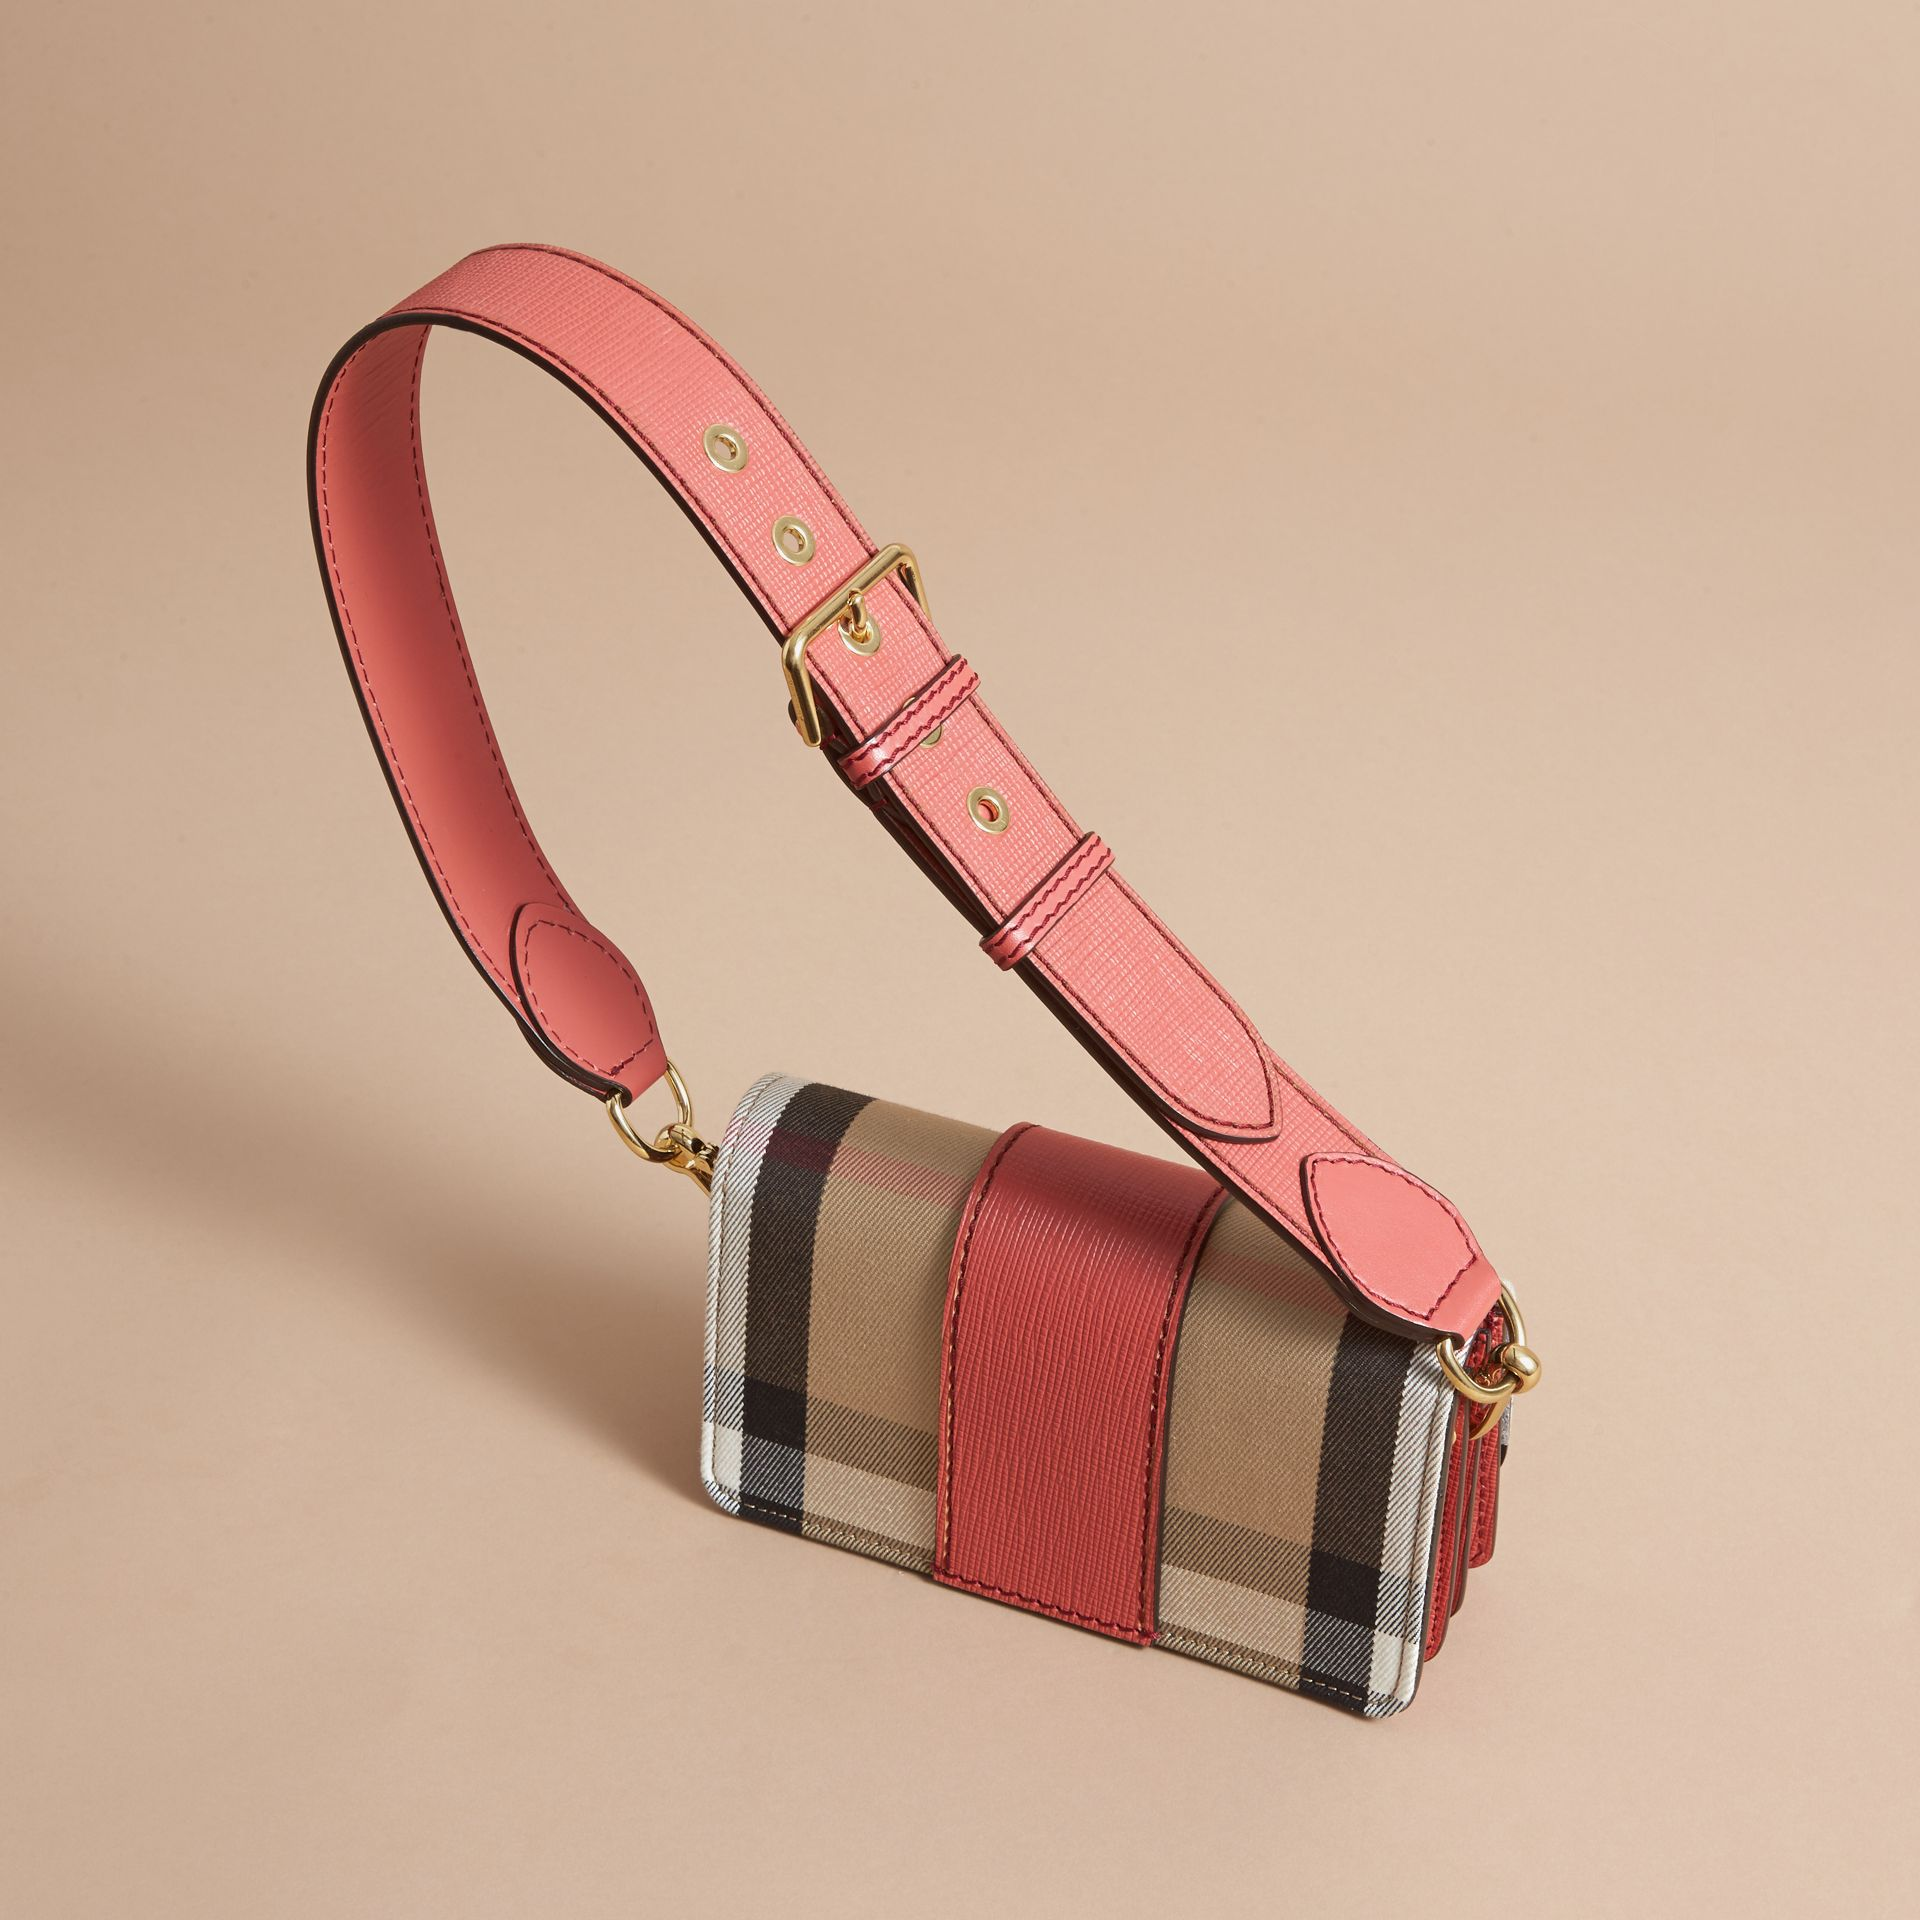 The Small Buckle Bag in House Check and Leather in Cinnamon Red - Women | Burberry Singapore - gallery image 4